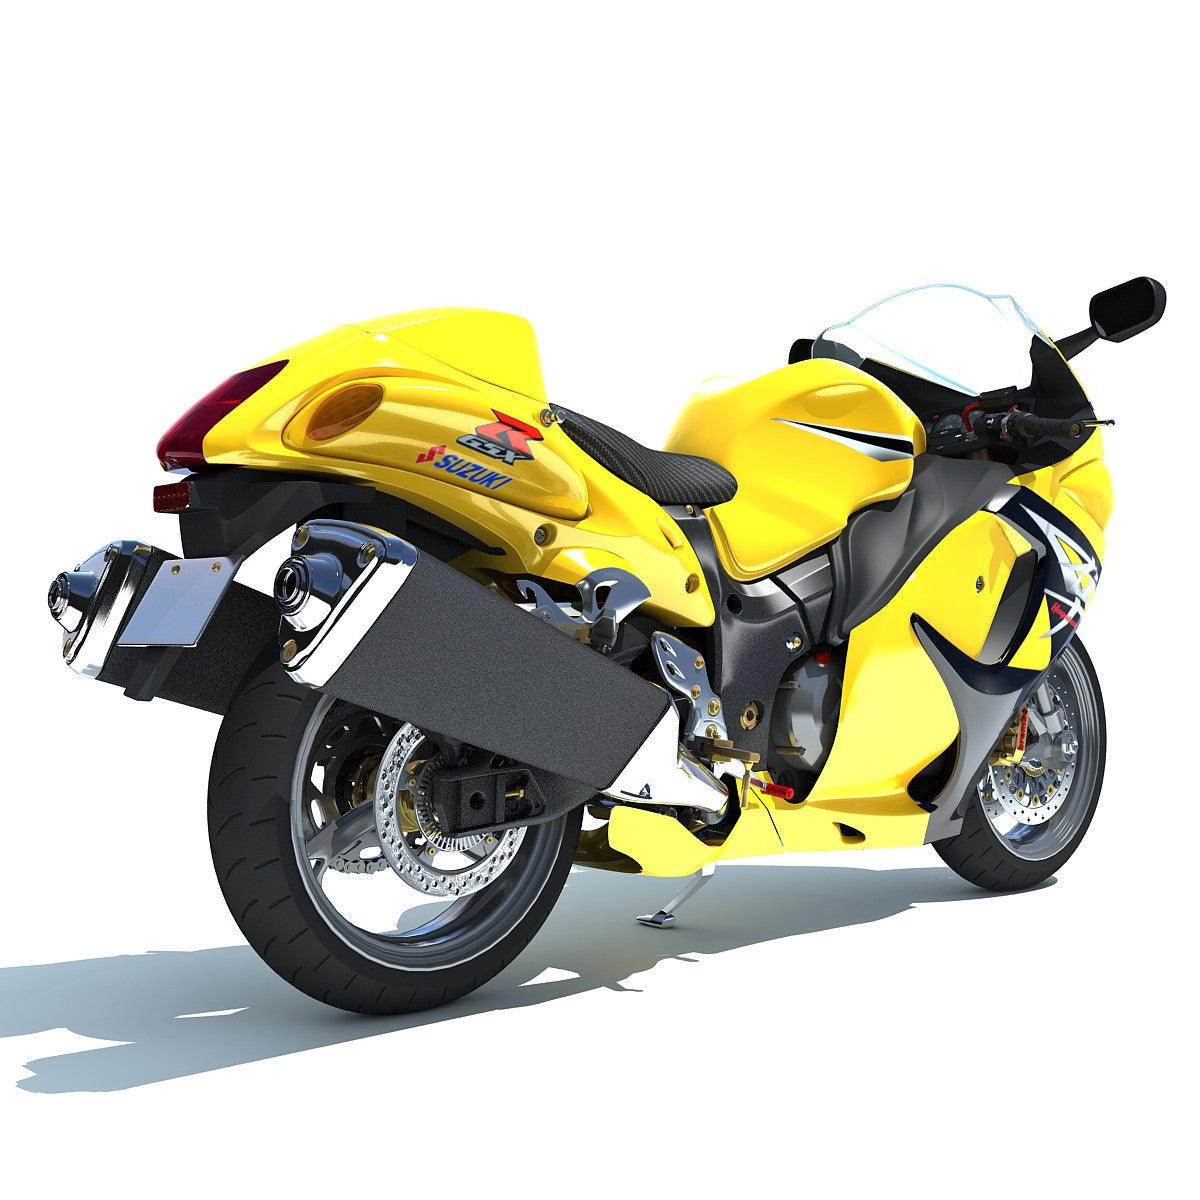 Suzuki Motorcycle 3D Model